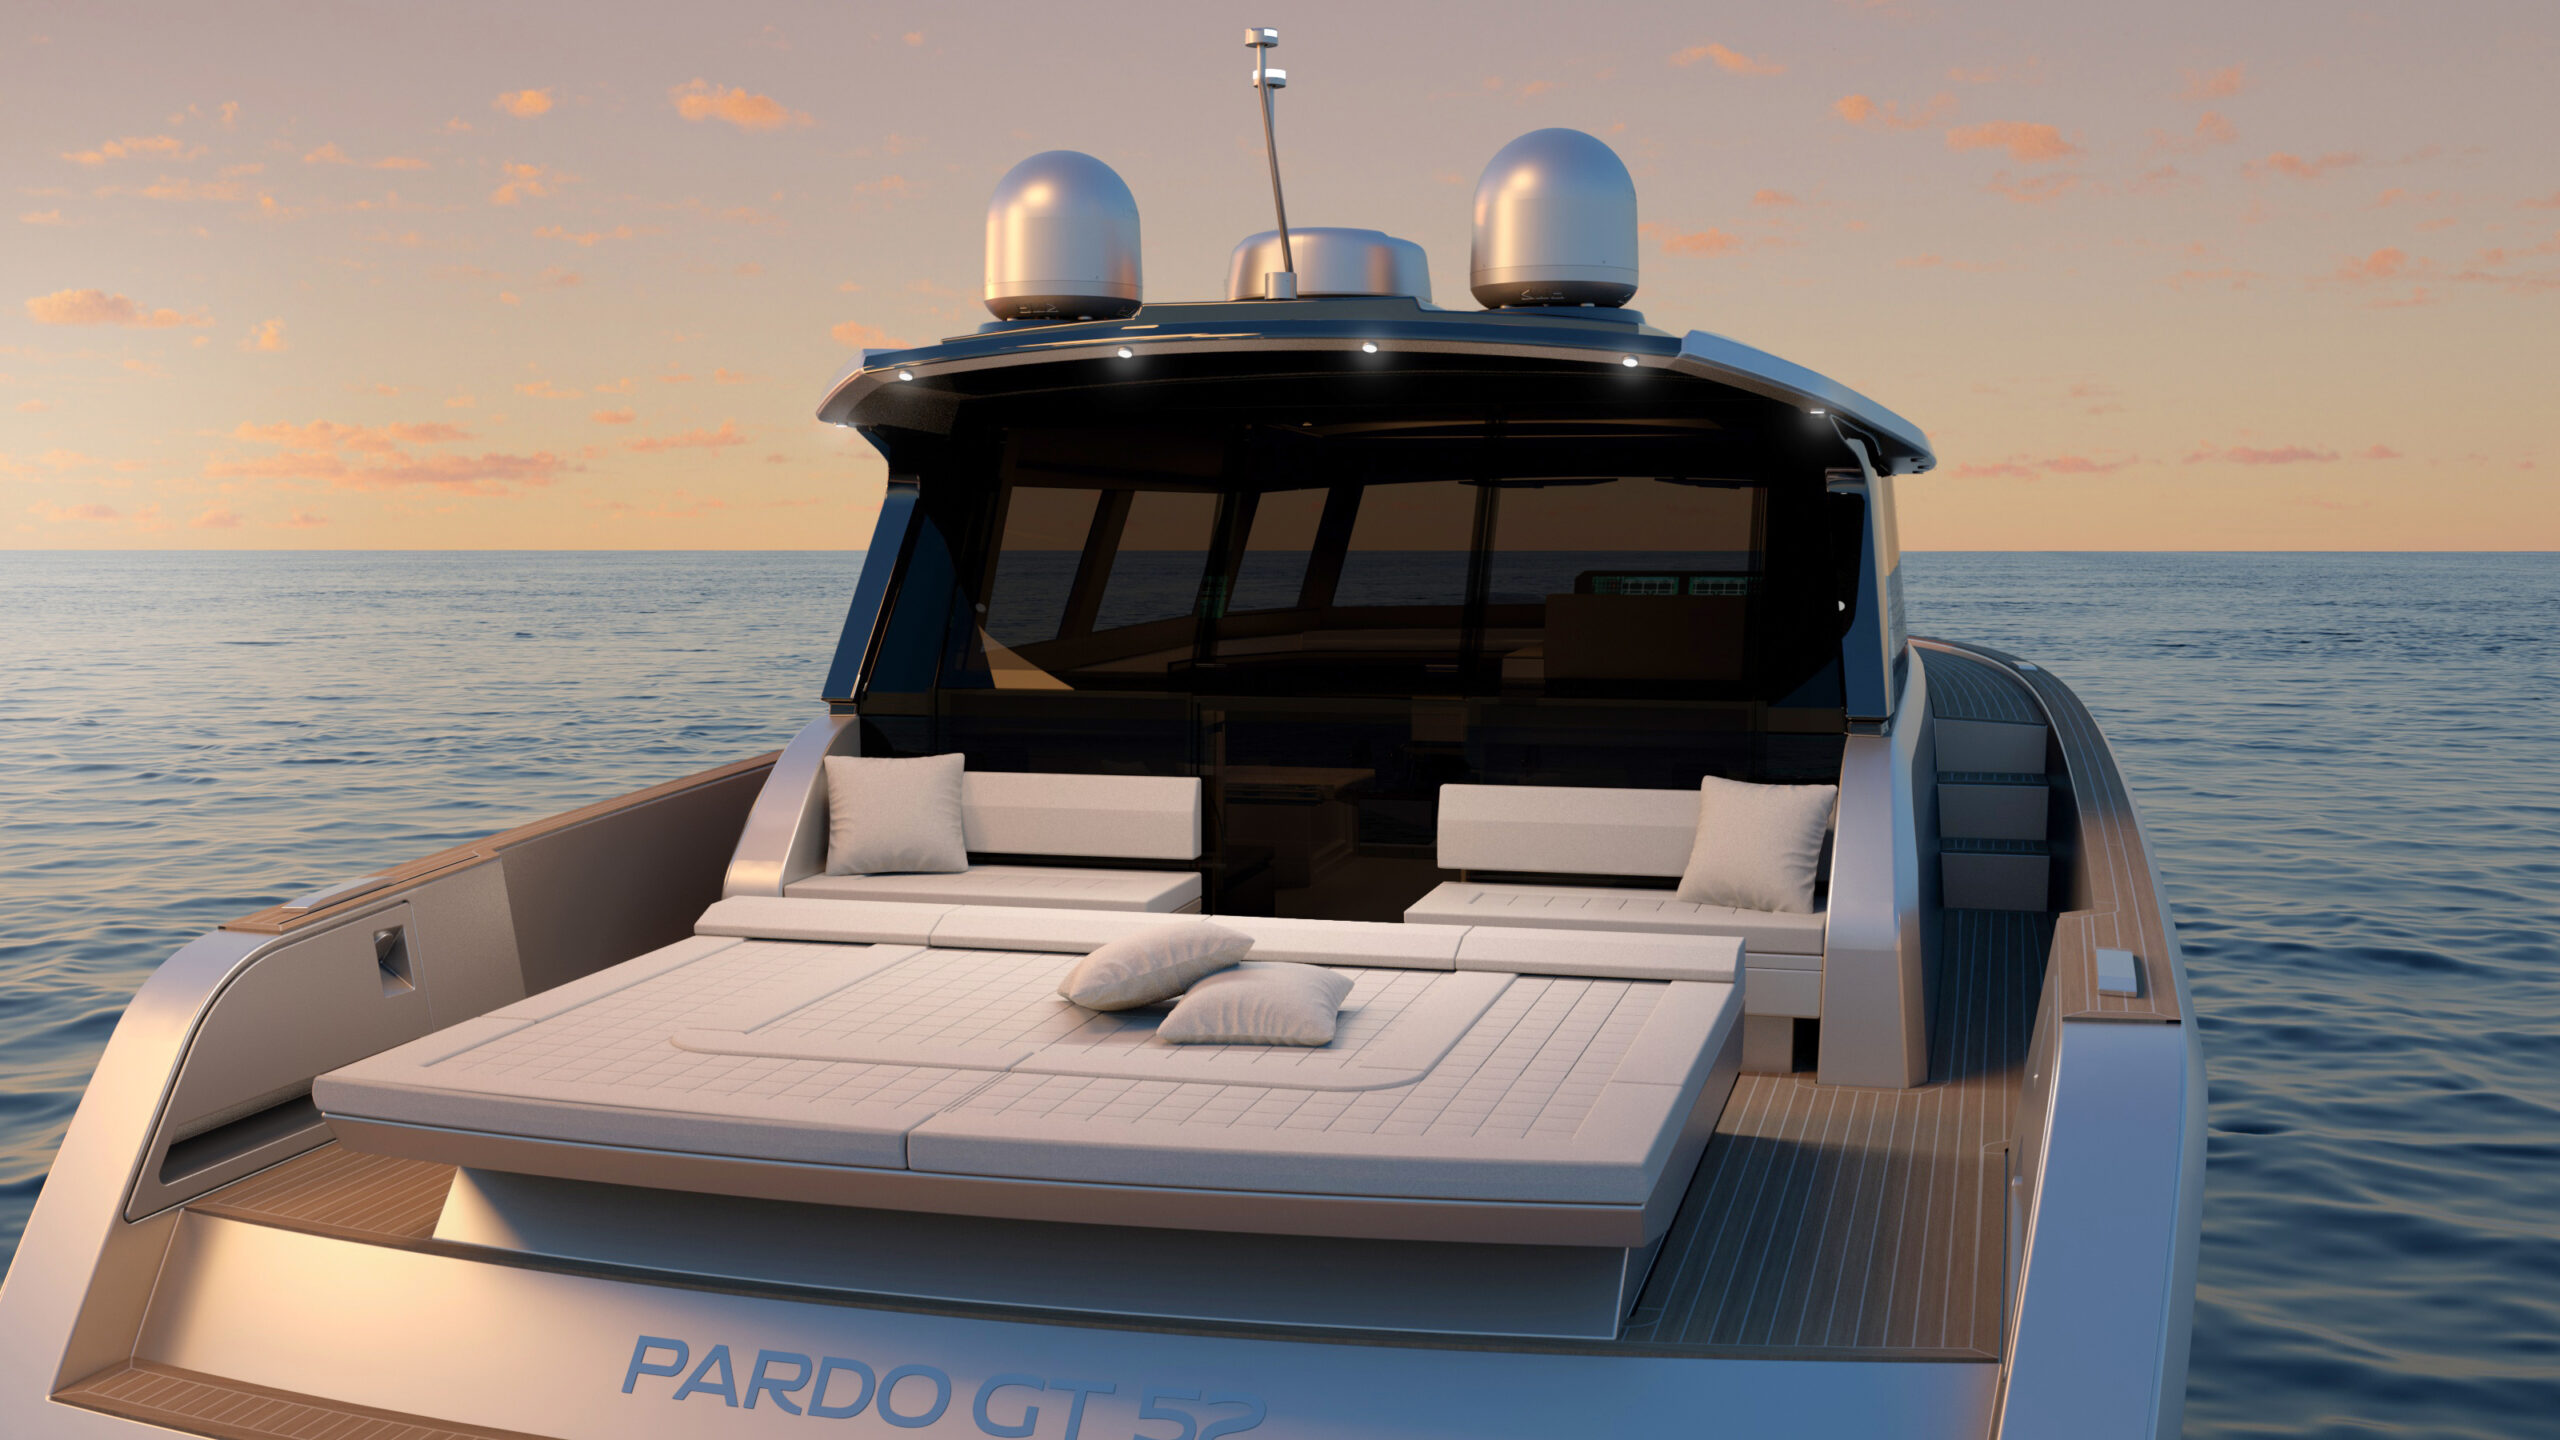 Pardo GT52 from rear with sundeck set as loungers